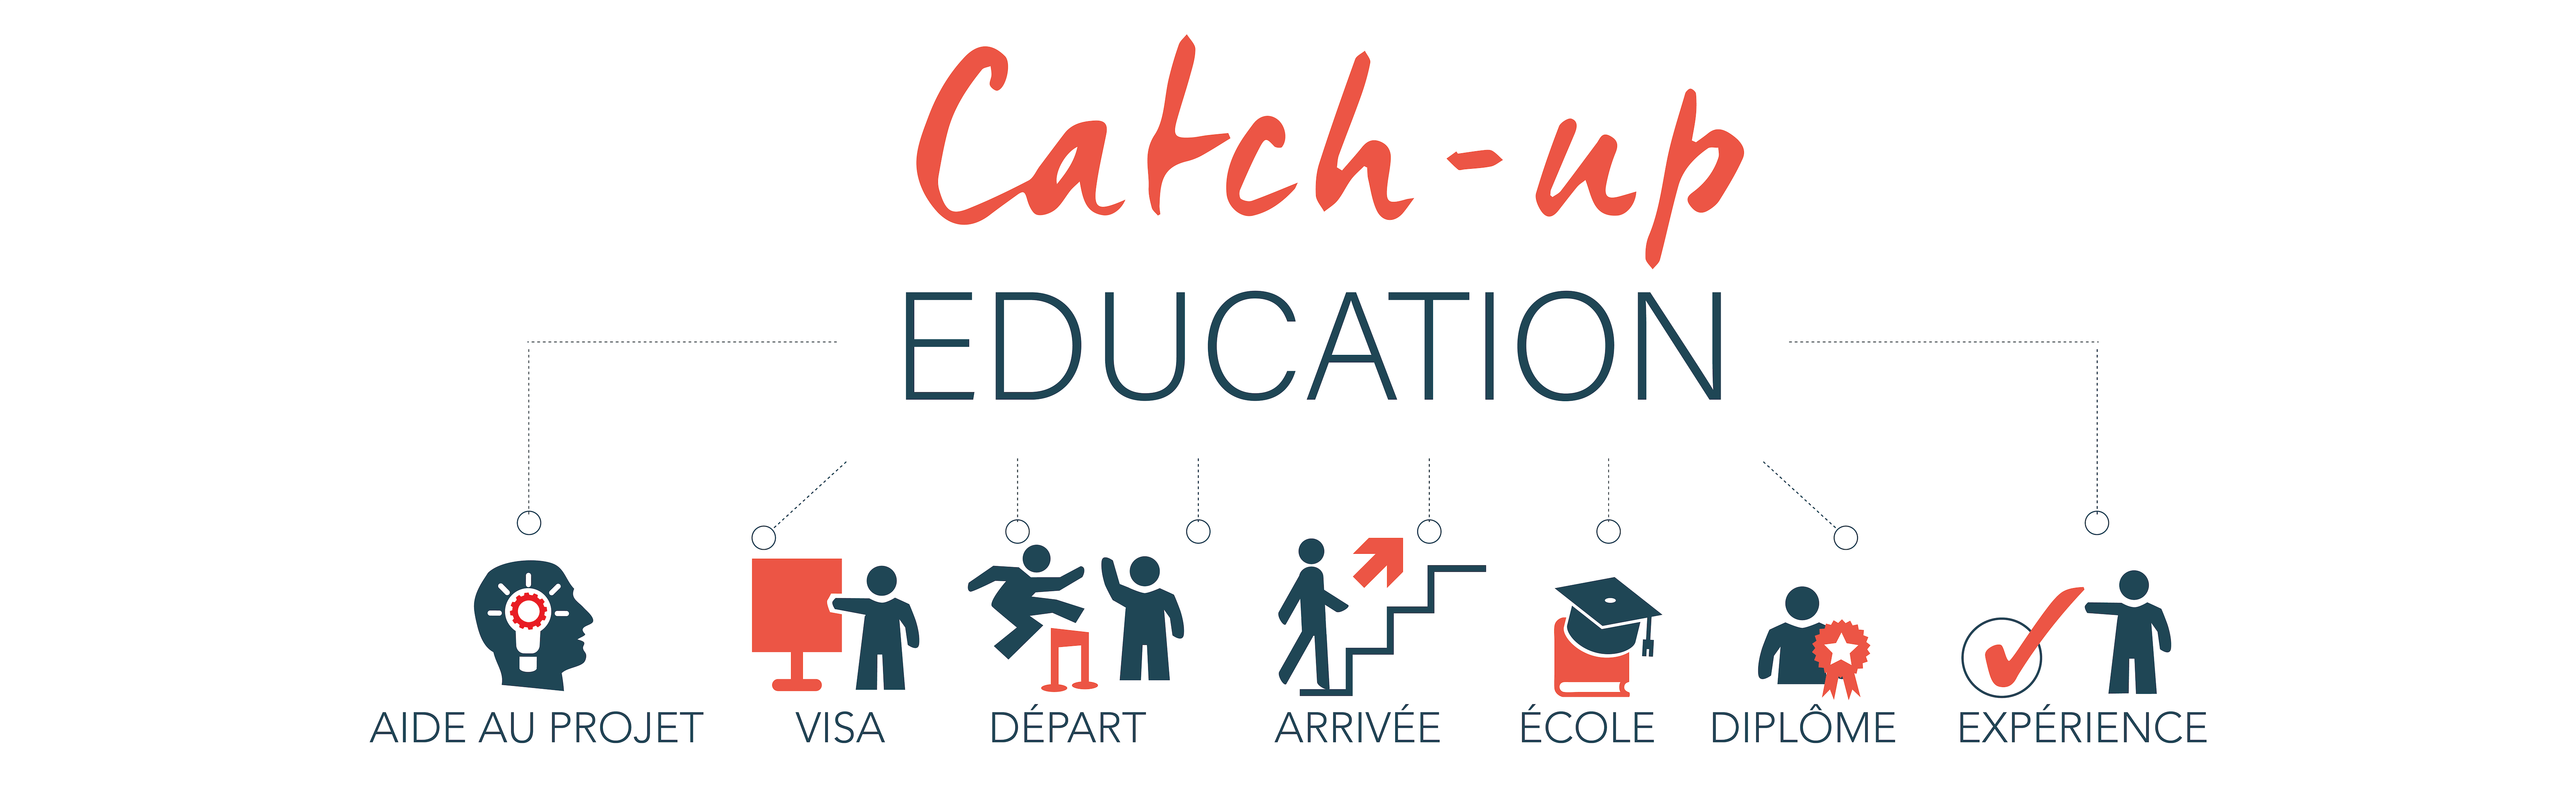 Processus Catch-up Education